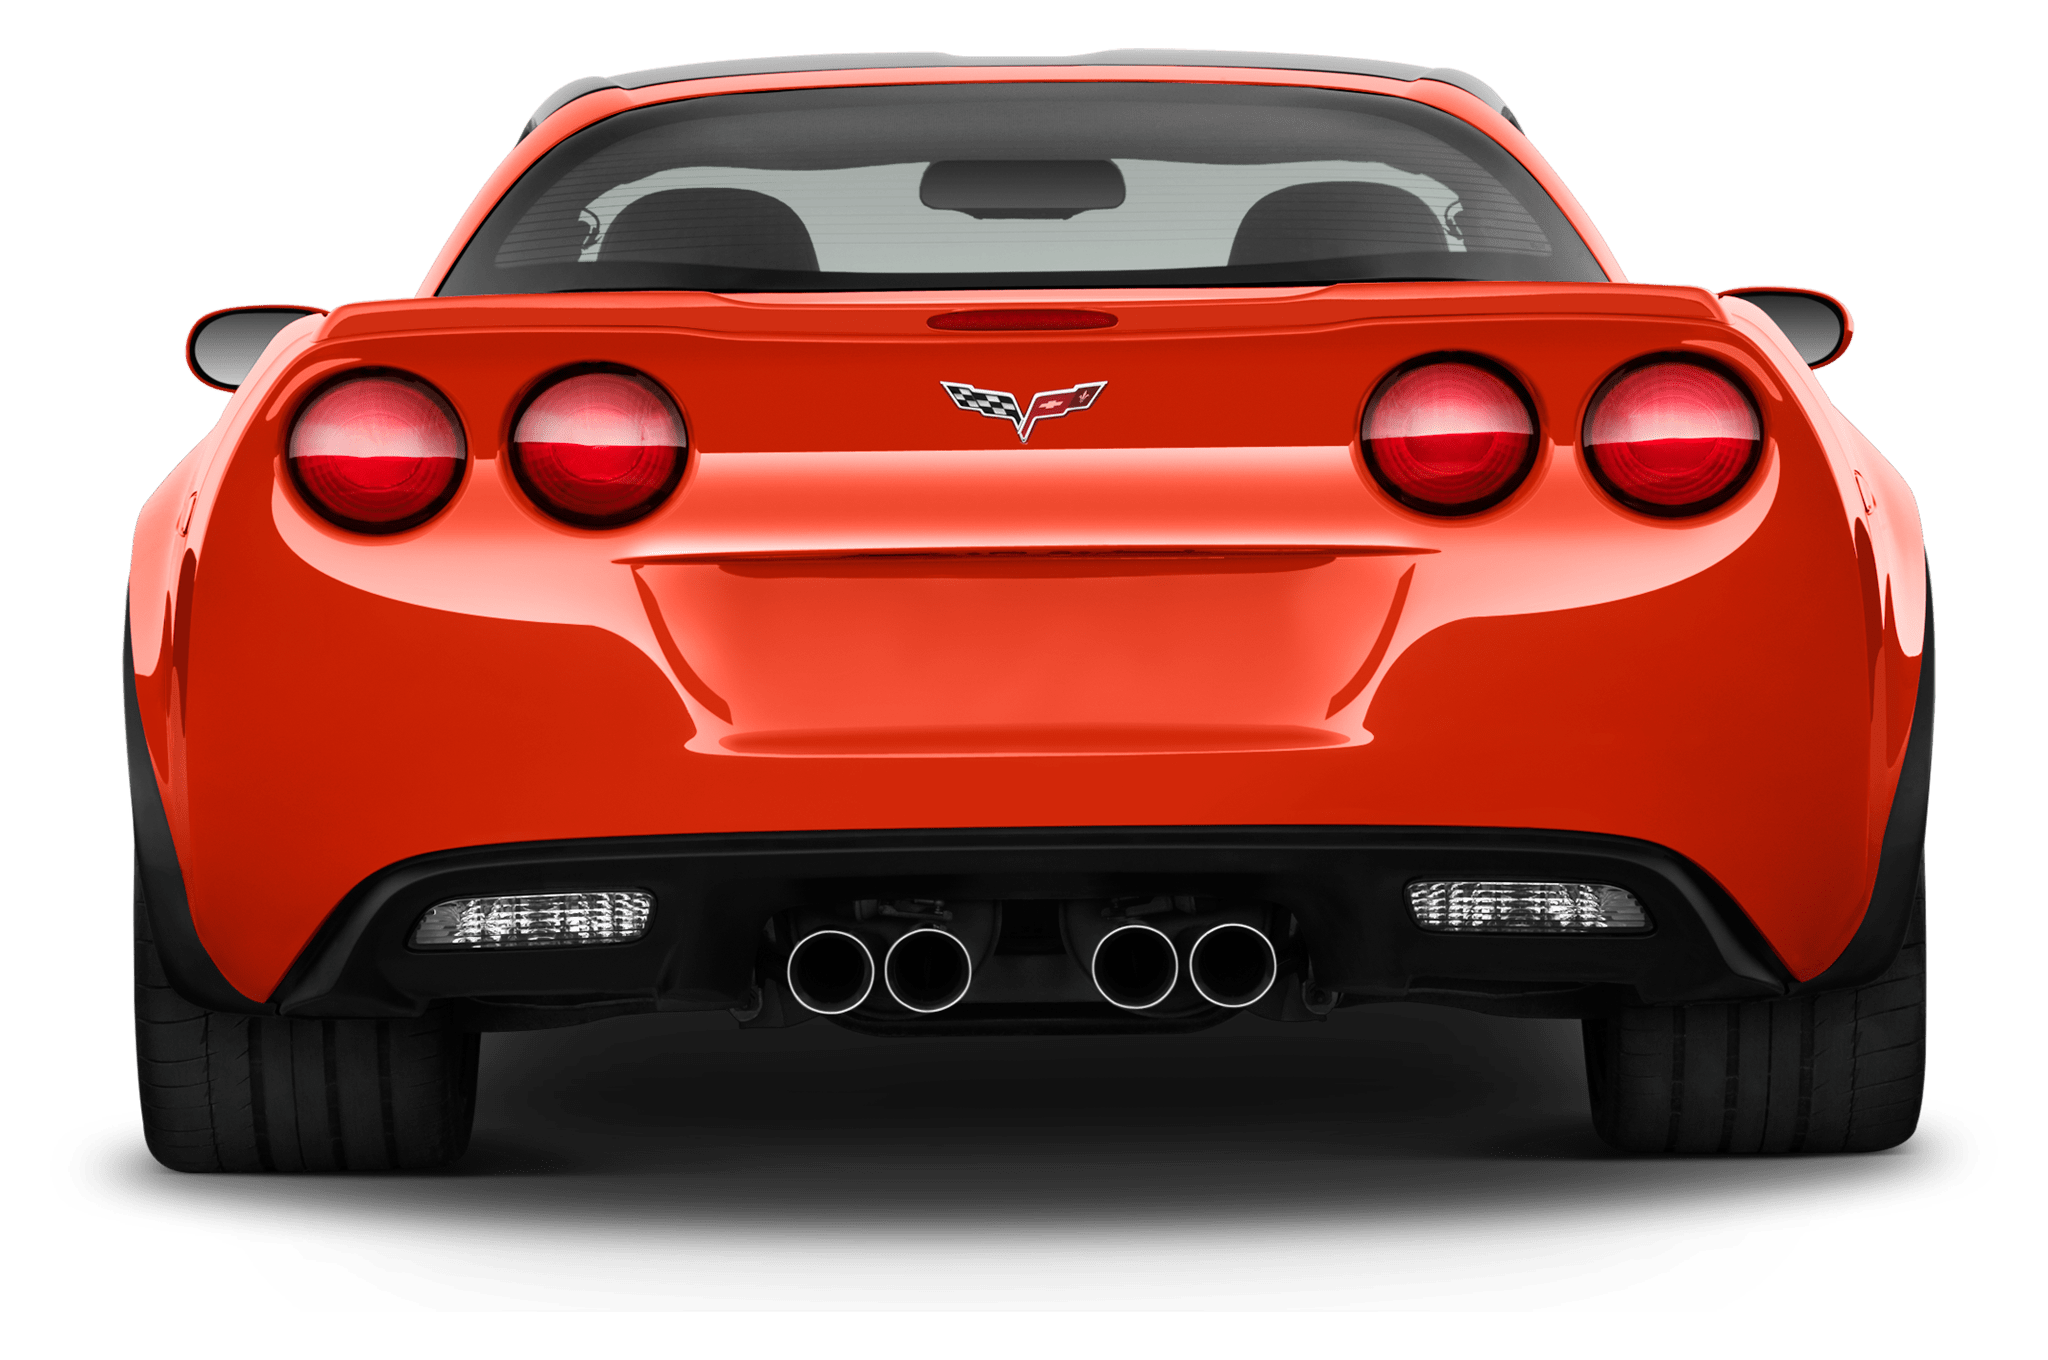 Car tail lights clipart clipart library library Corvette Rear View transparent PNG - StickPNG clipart library library